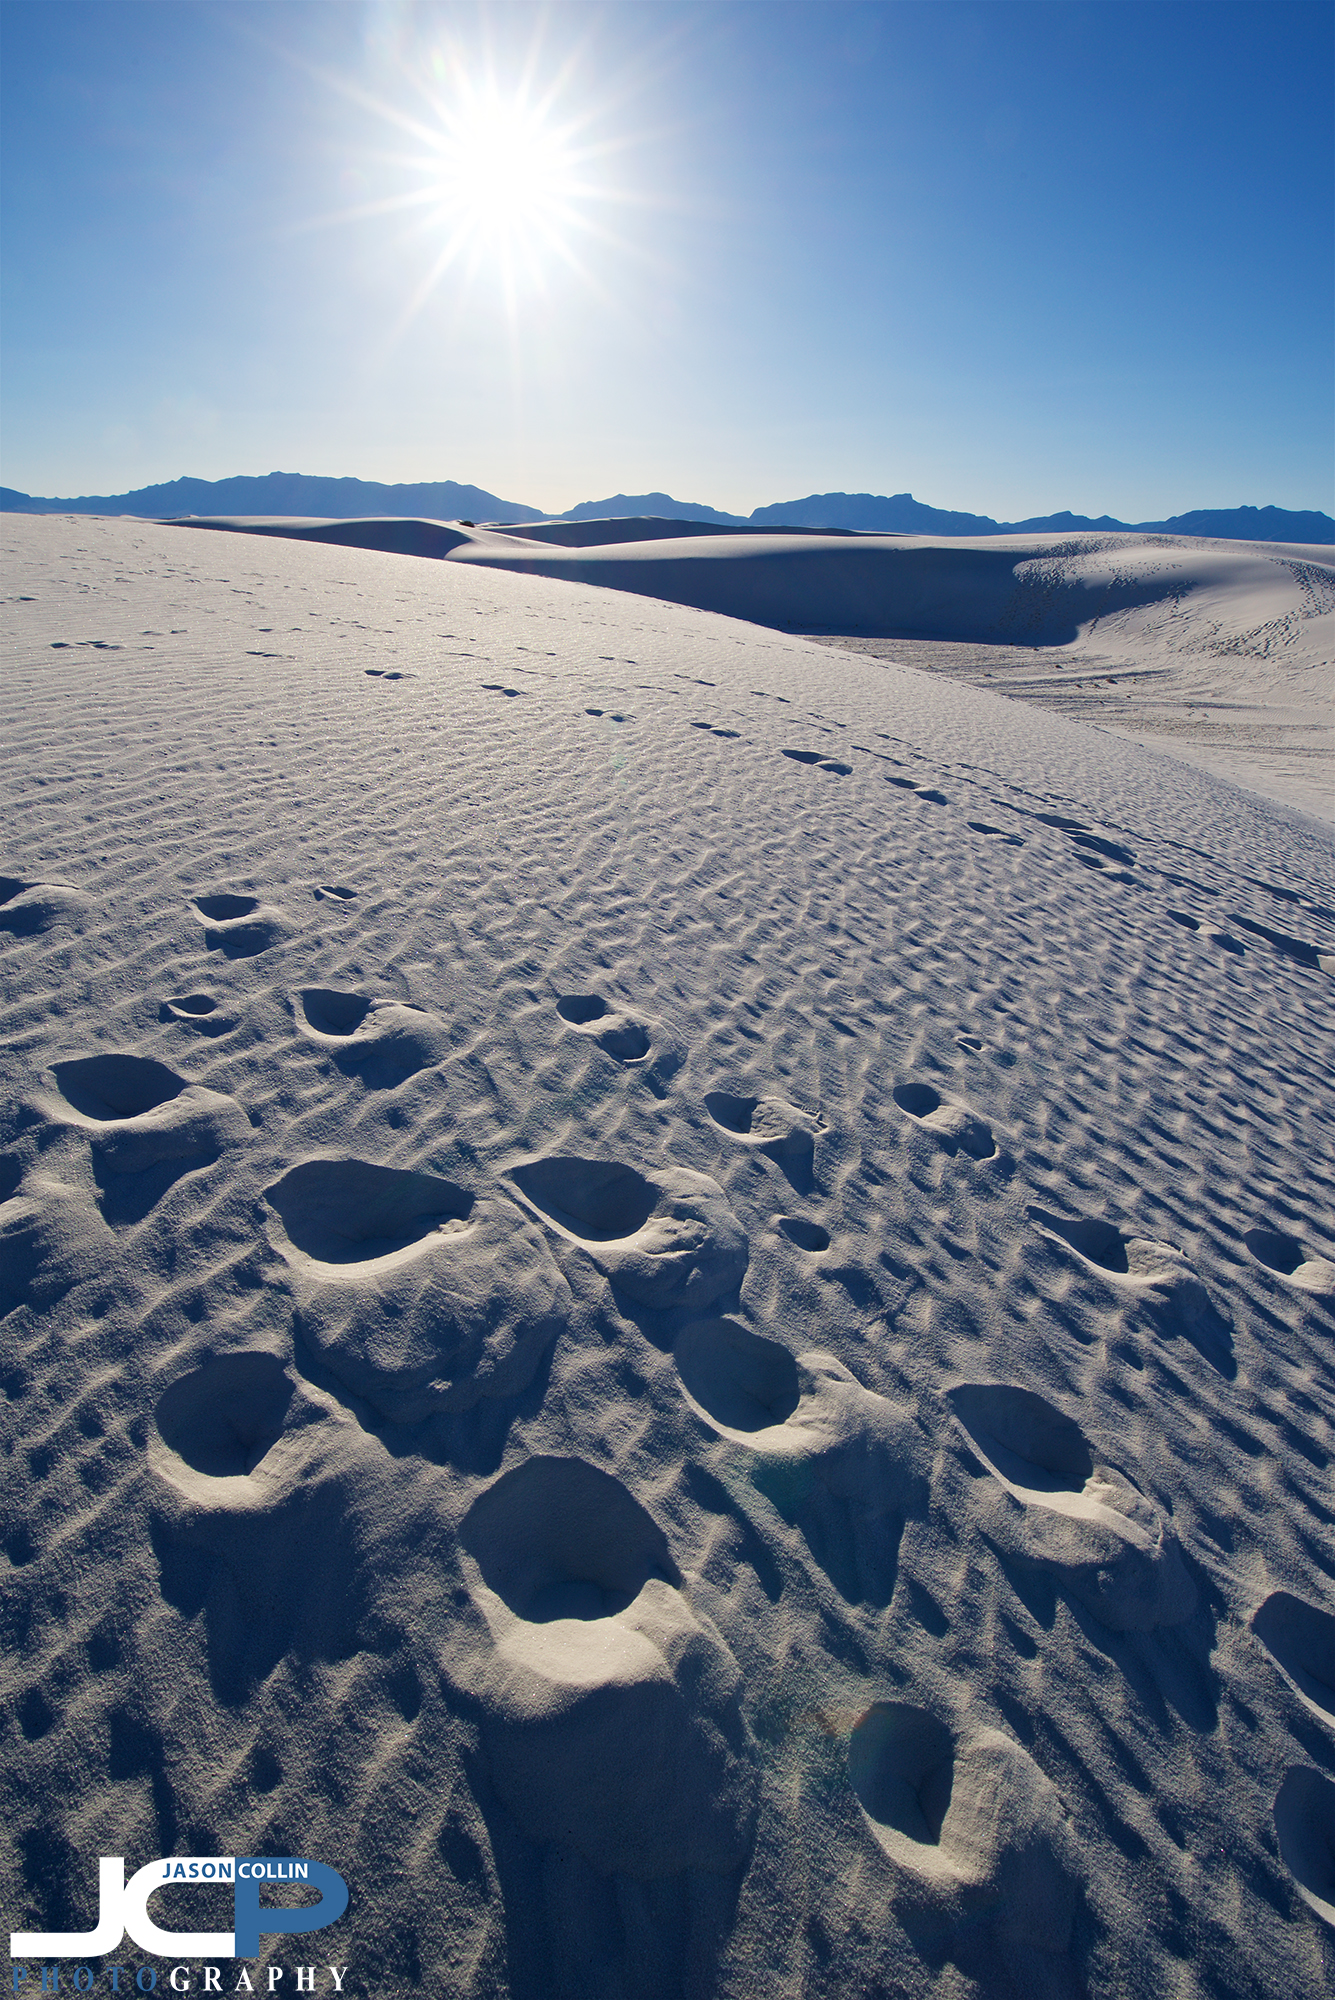 Dog paw prints on White Sands National Monument which is a very dog friendly park - Nikon D750 with Tamron 15-30mm @ f/16 1/160th ISO 100 15mm